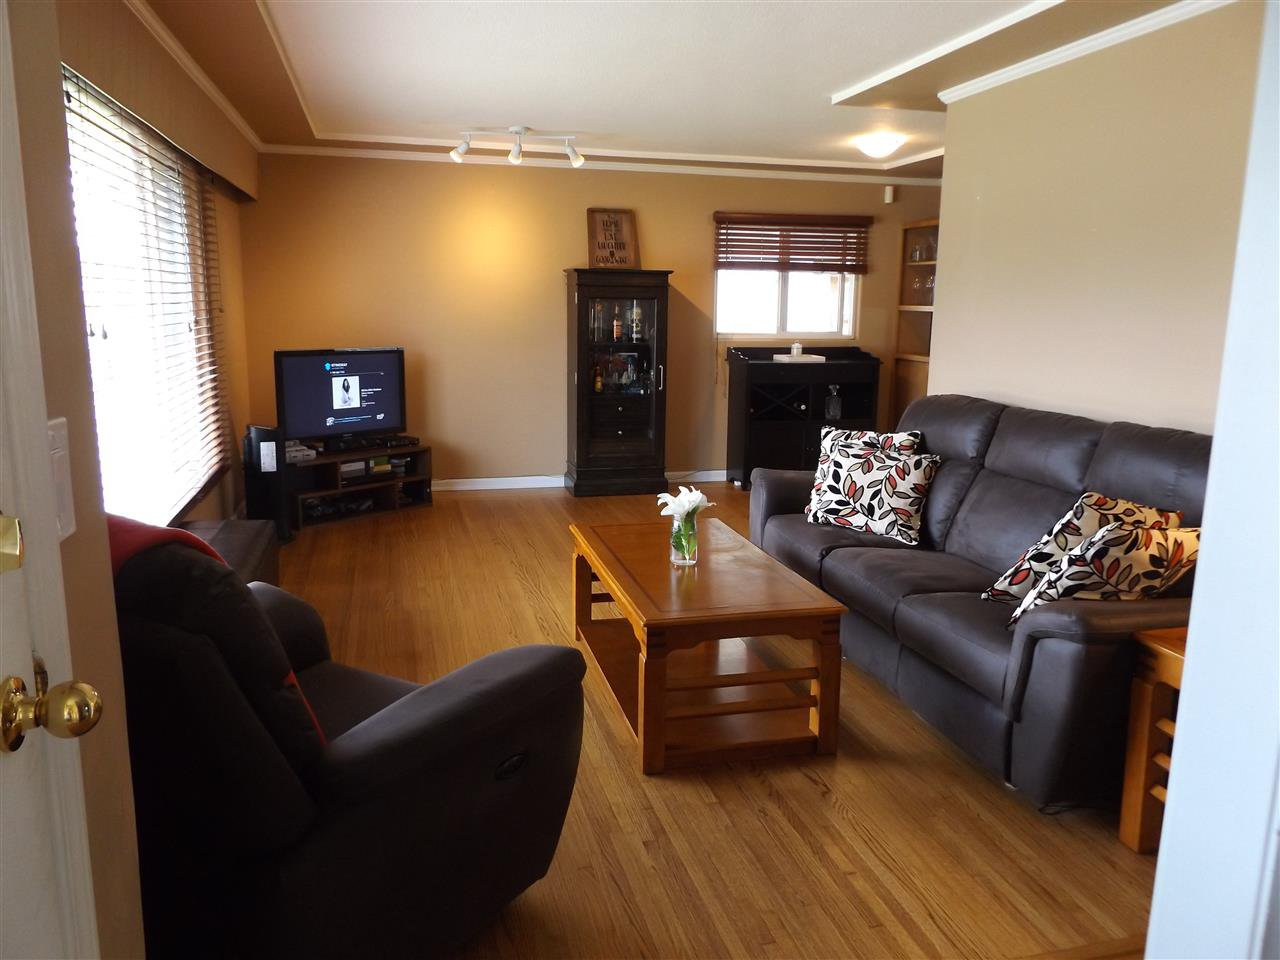 Photo 10: Photos: 46615 FRASER Avenue in Chilliwack: Chilliwack E Young-Yale House for sale : MLS®# R2178819